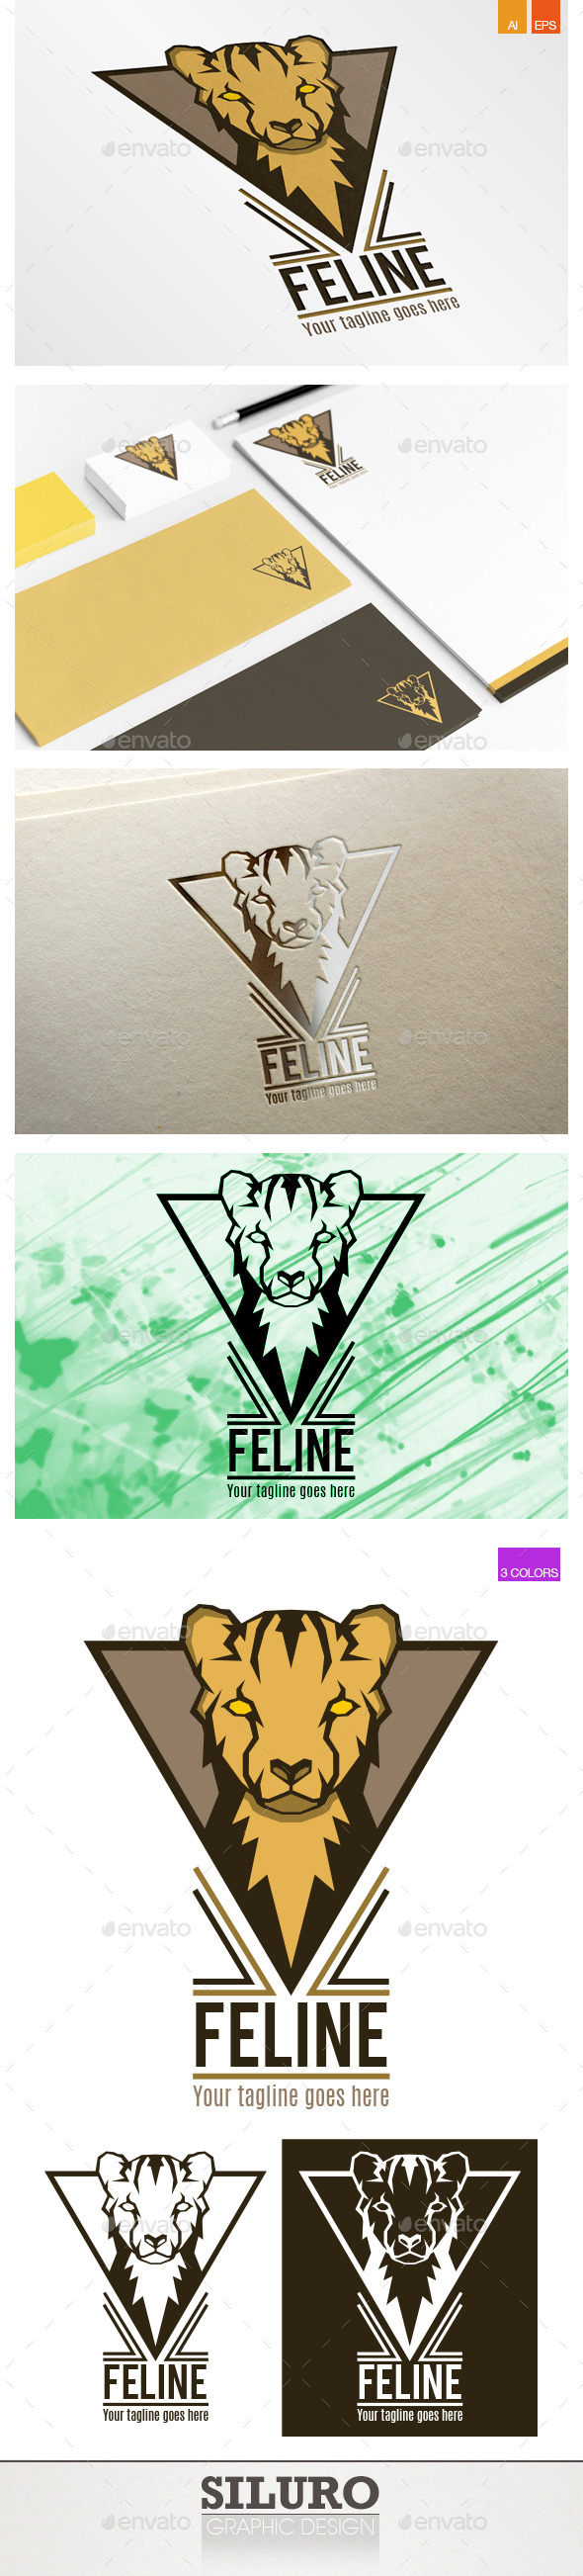 Feline Logo - Animals Logo Templates